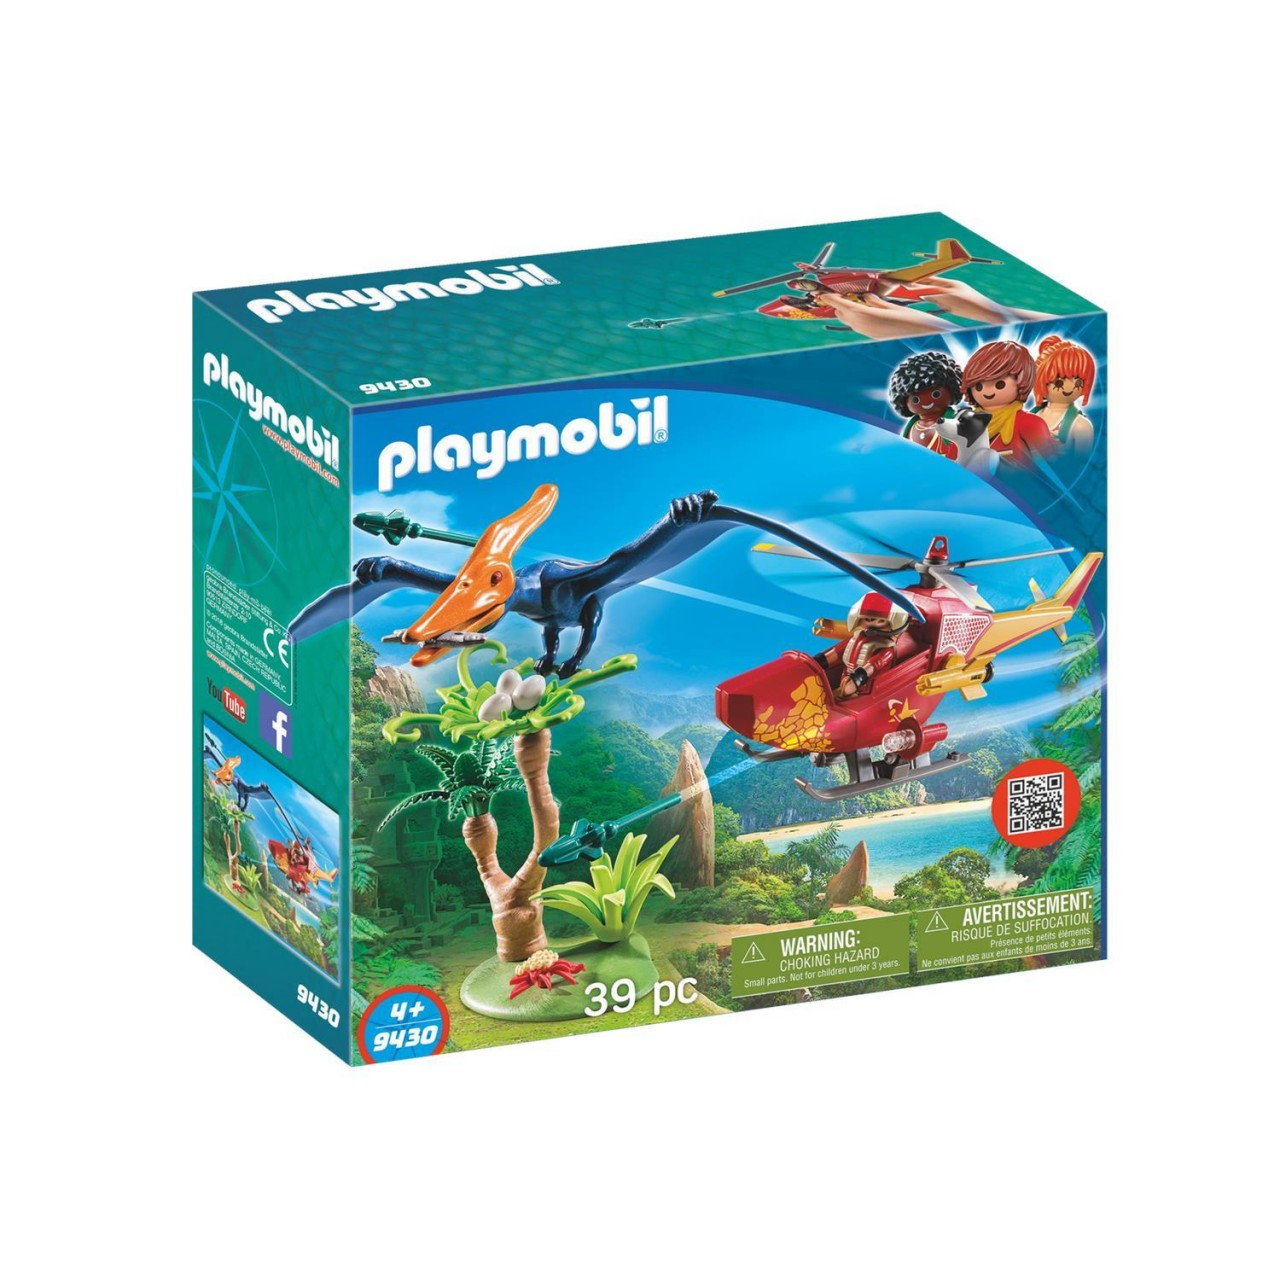 Playmobil 9430 Helikopter mit Flugsaurier